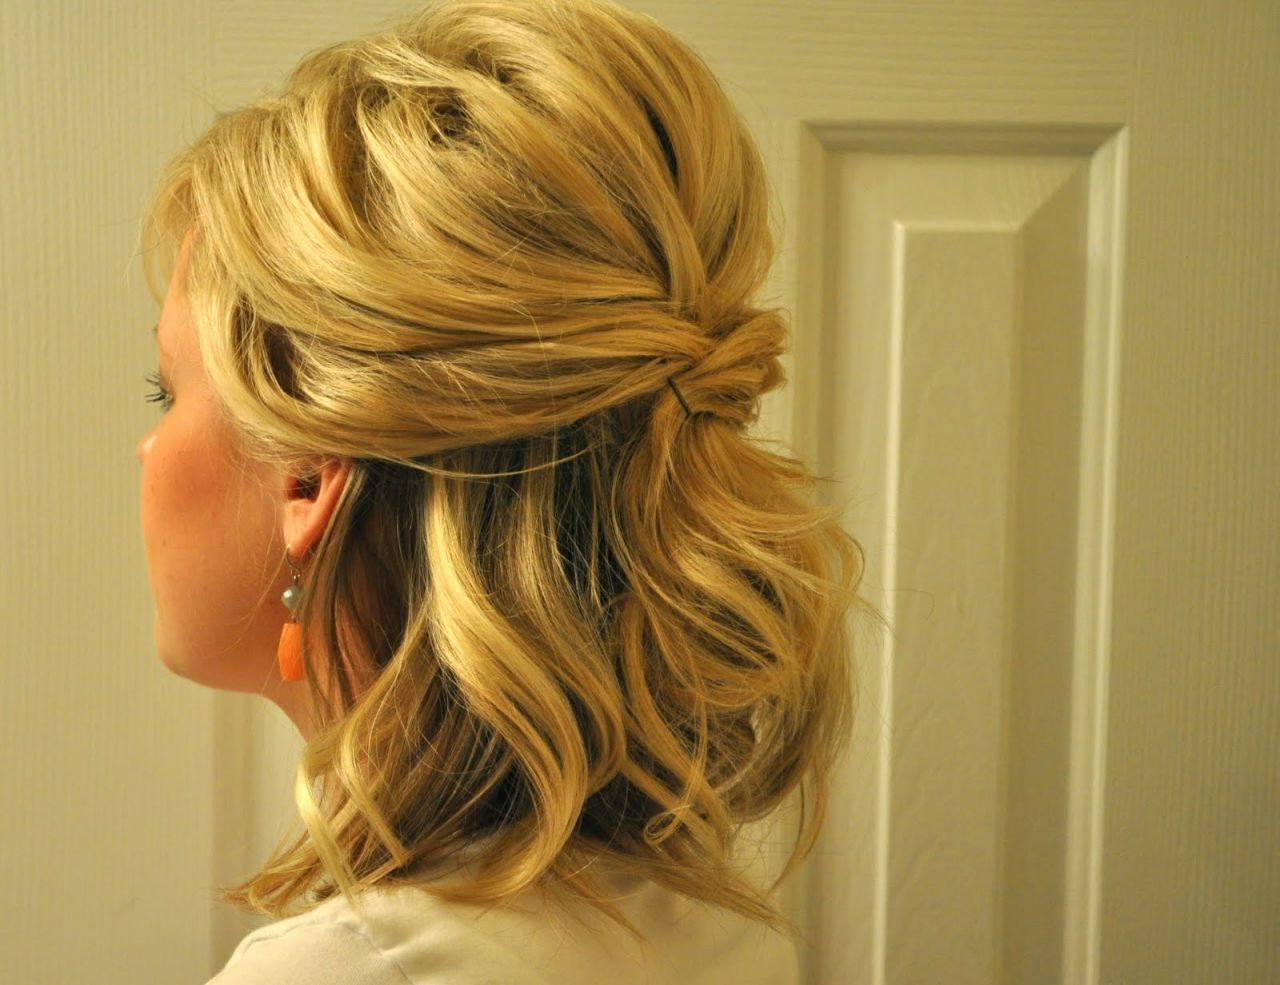 Hairstyles For Curly Hair Half Up Half Down Prom Hairstyles For With Regard To Most Current Half Long Half Medium Haircuts (View 3 of 20)